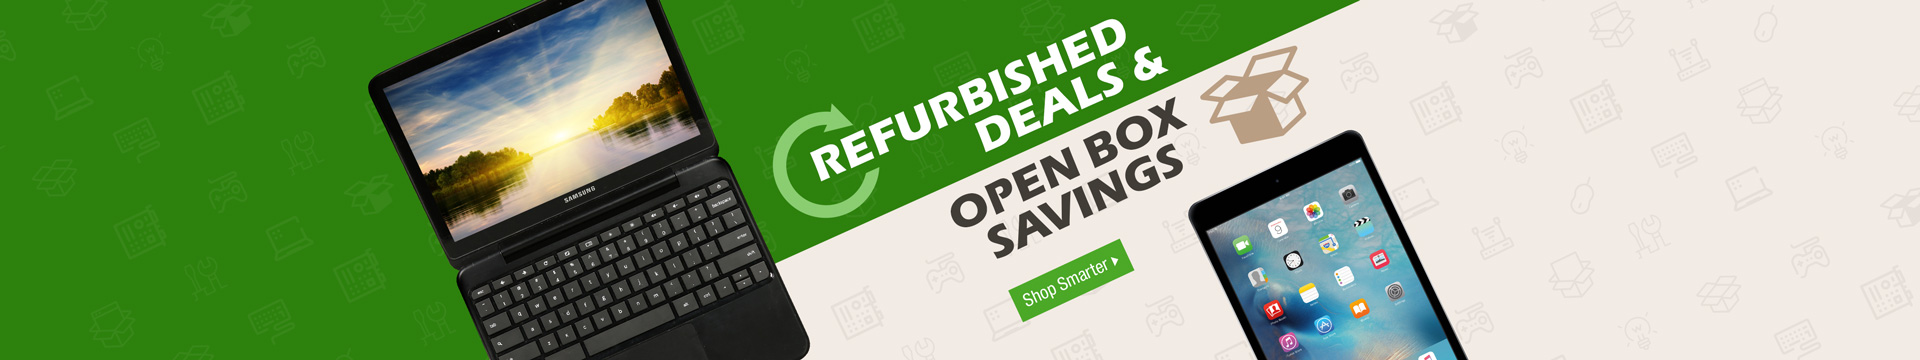 Computer parts laptops electronics and more newegg refurbished deals open box savings fandeluxe Gallery